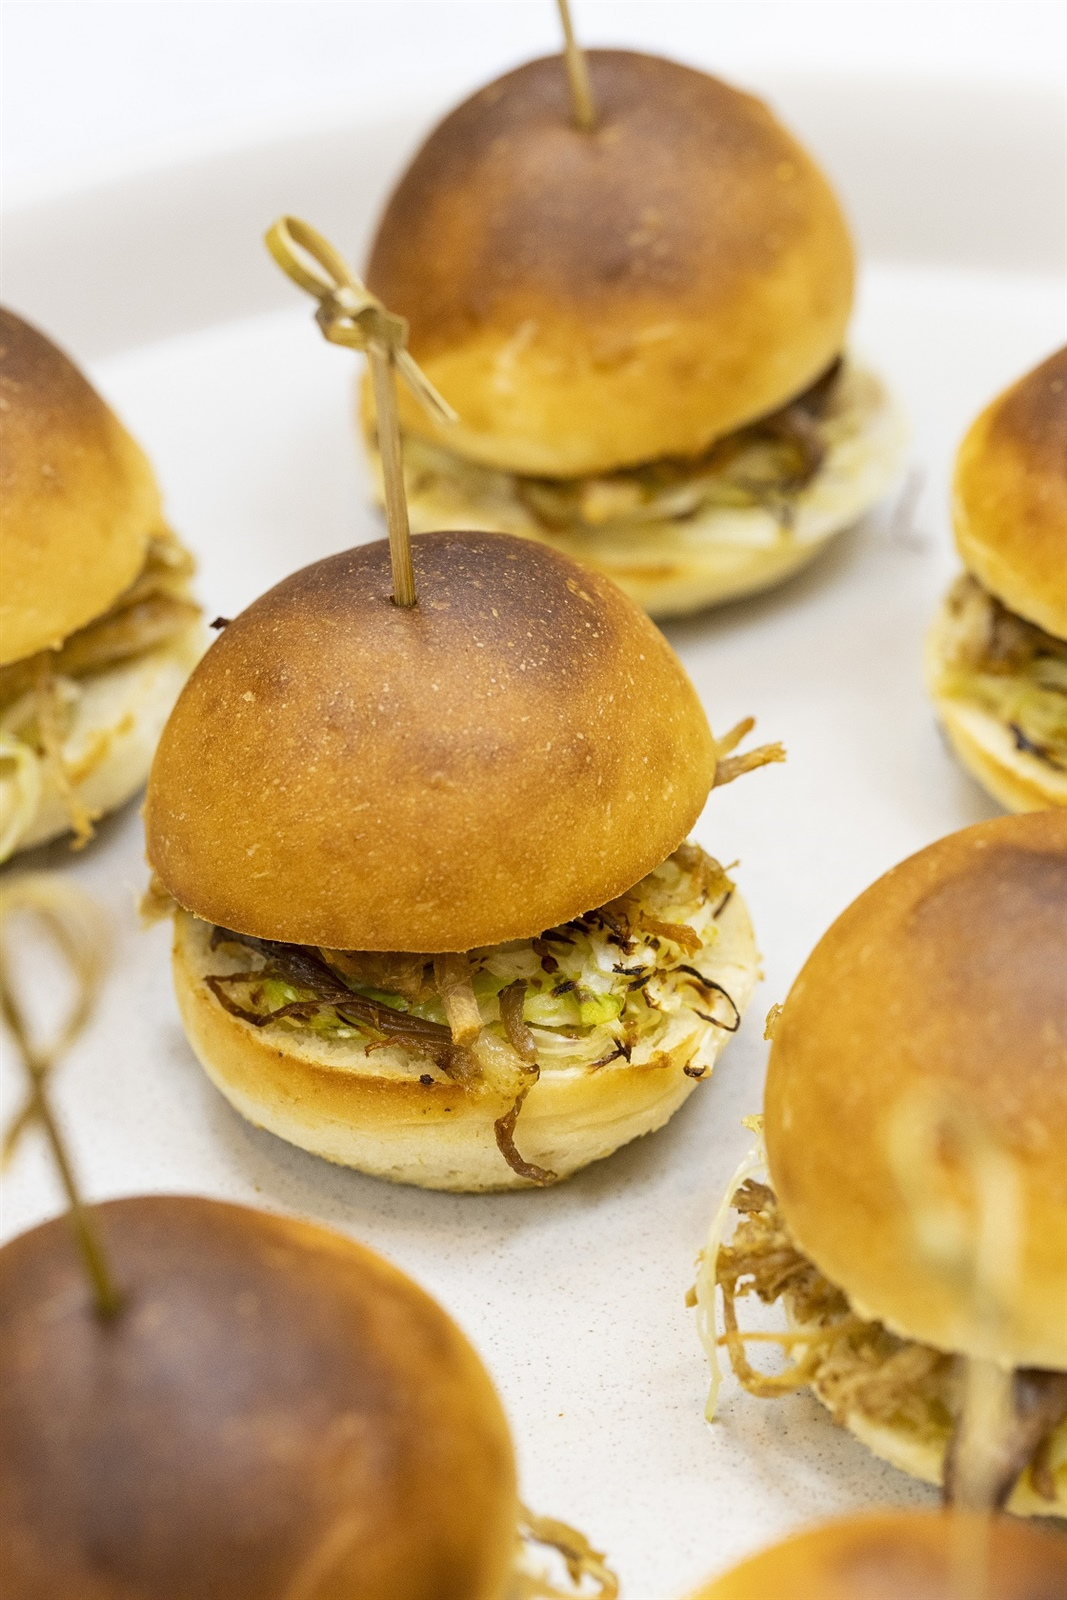 Smoked pulled pork slider, fennel & apple slaw, spicy chipotle